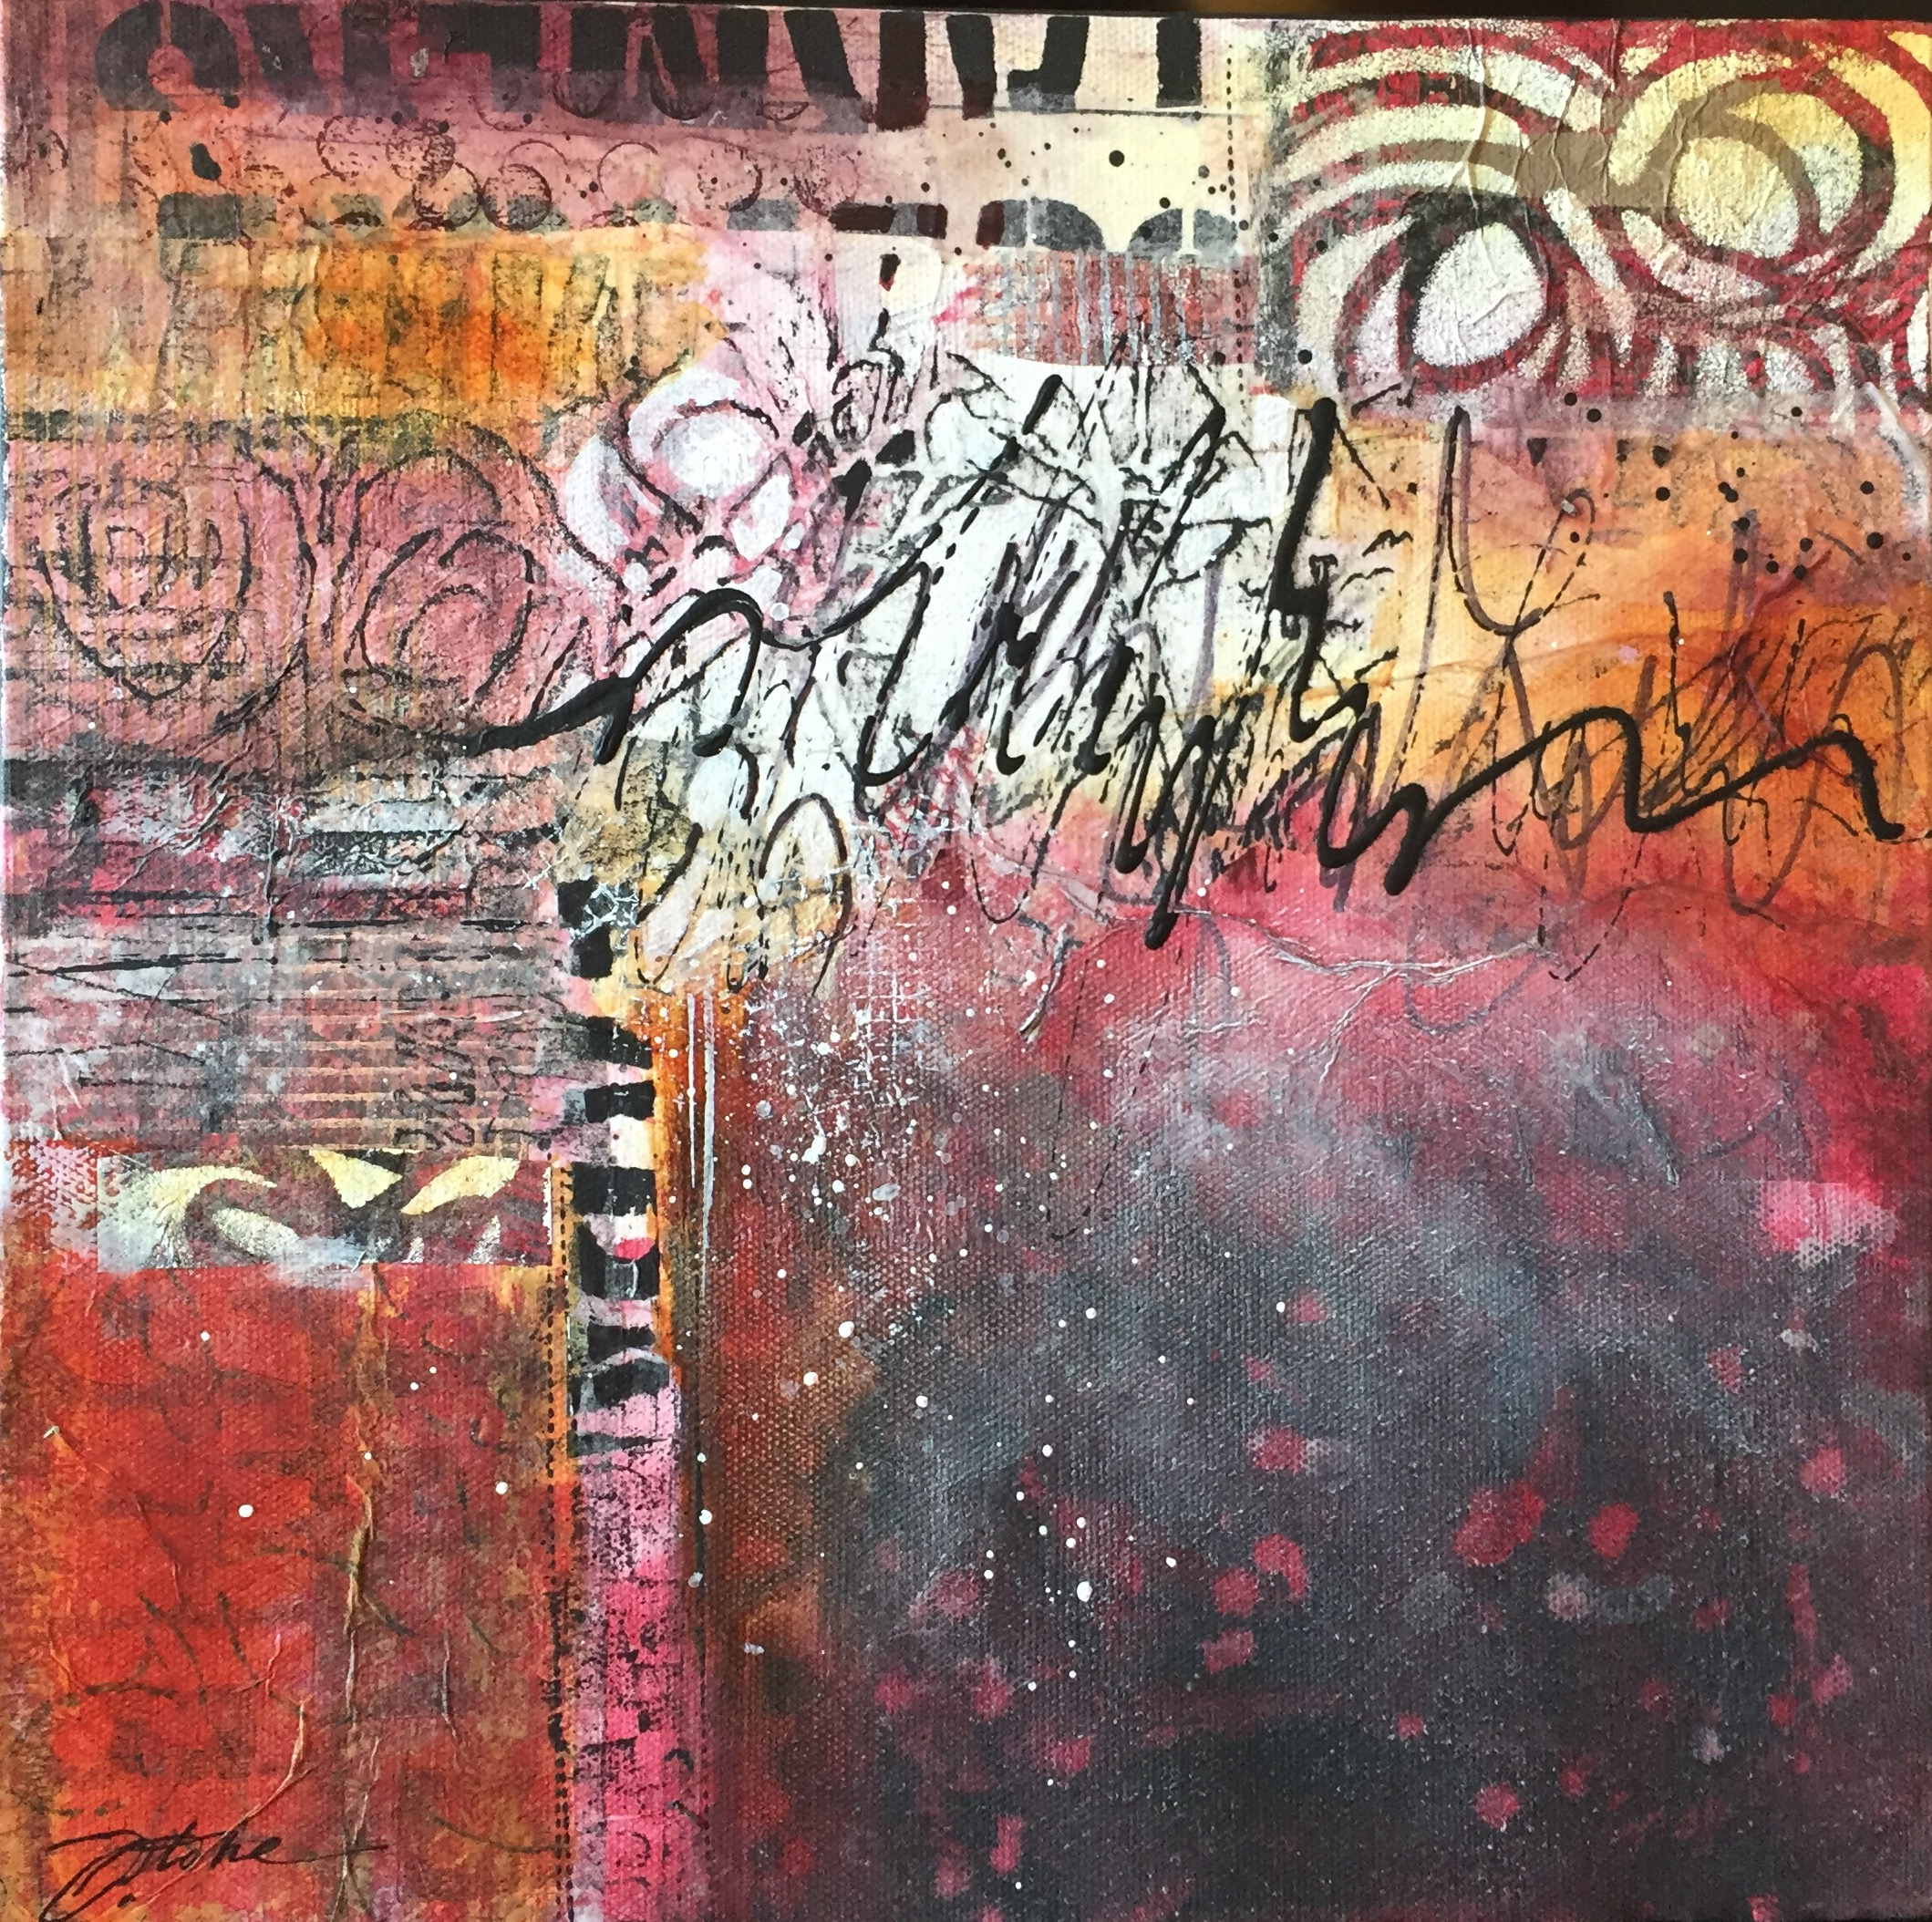 Acrylic and original collage on 12 x 12 canvas. SOLD by Jennifer Stone at Jennifer Stone Artwork